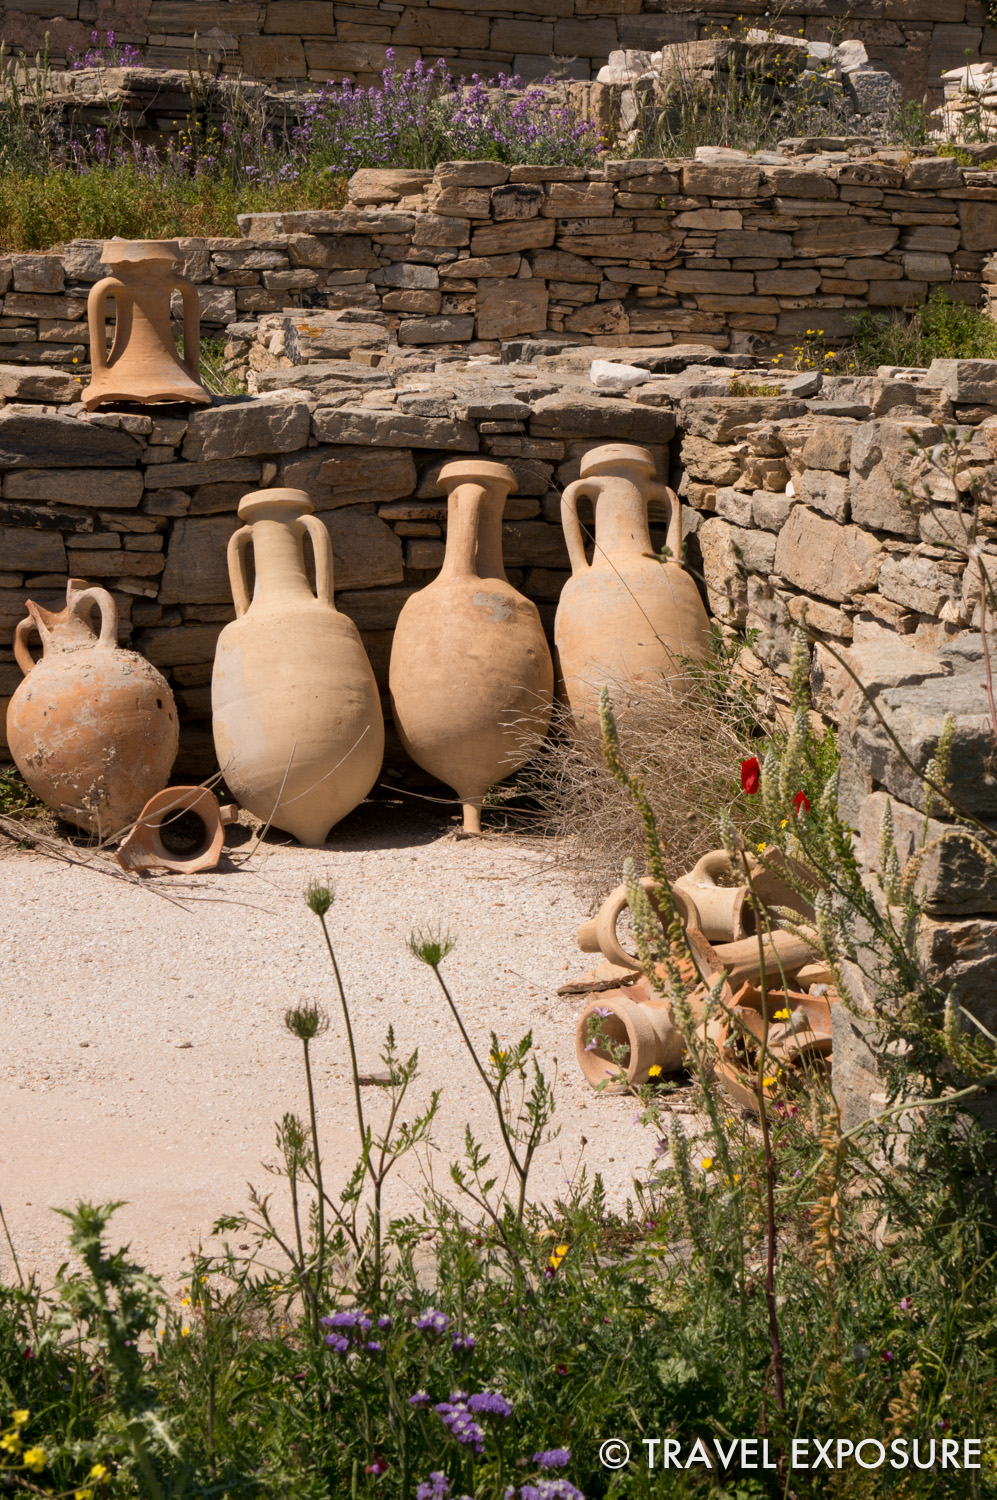 Clay jars called Amphora were used to transport goods.